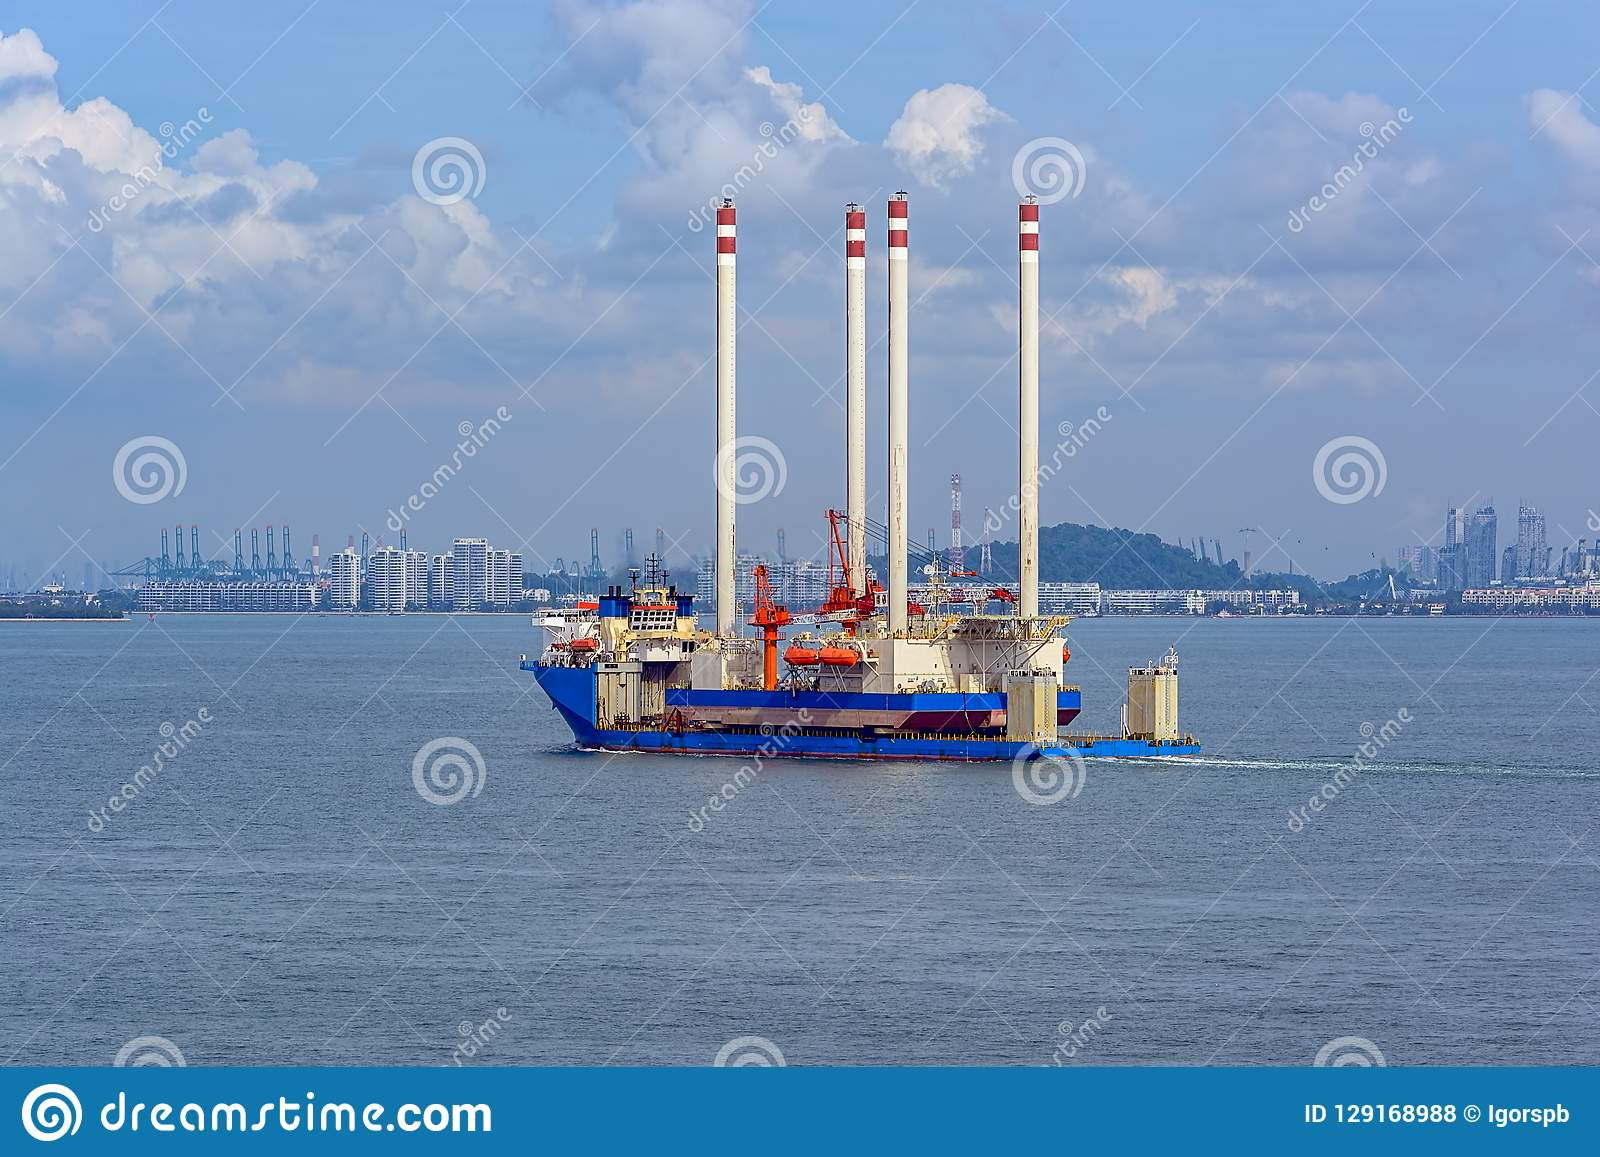 Heavy lift cargo ship transporting an oil rig platform